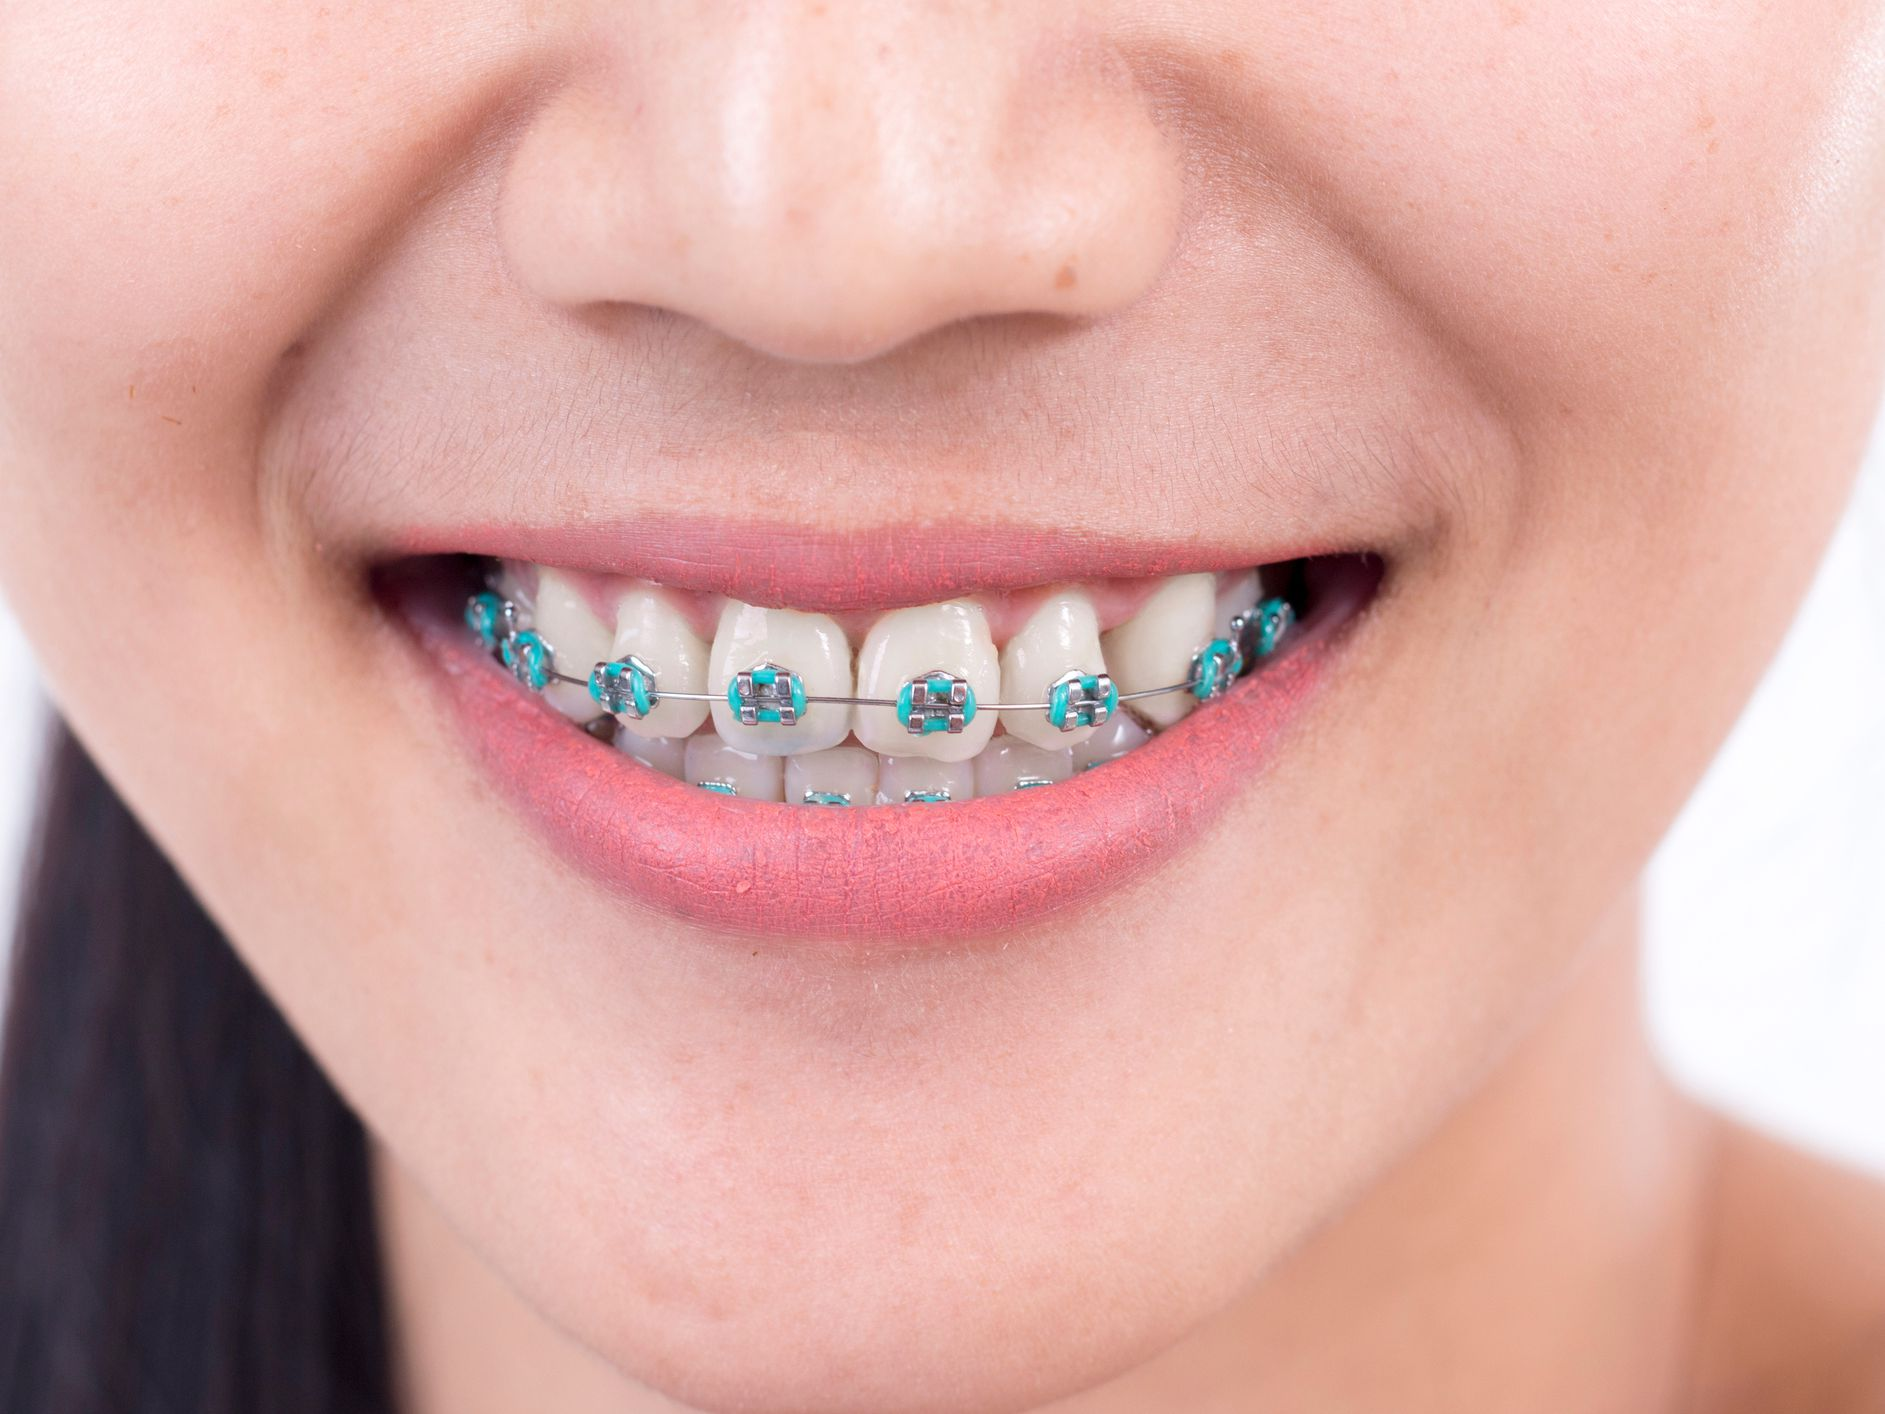 Requirements For The Installation Of Braces?